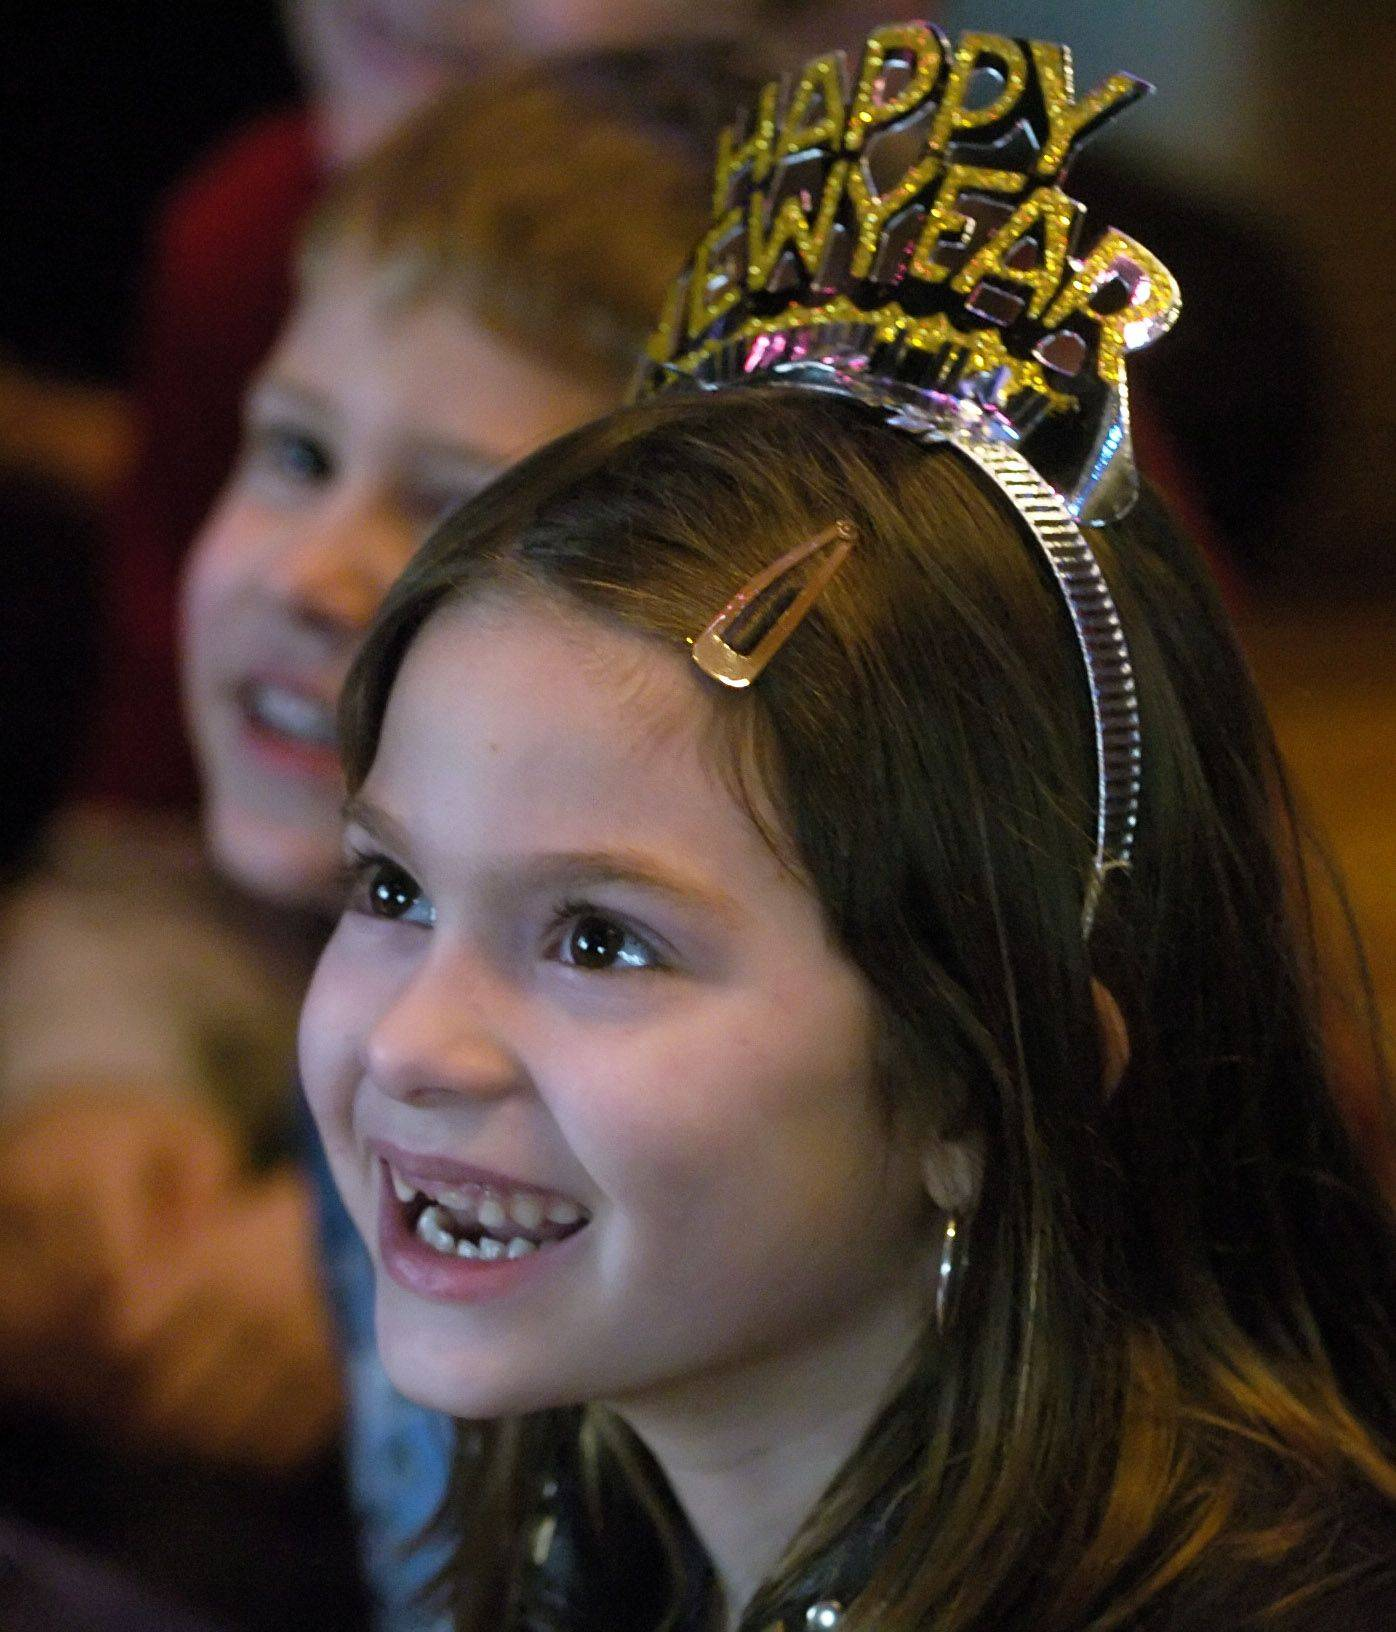 Kyra Hatch, 7, of Des Plaines watches the magic show during a New Year's Eve party at Blues Bar, hosted by the Mount Prospect Downtown Merchants Association.